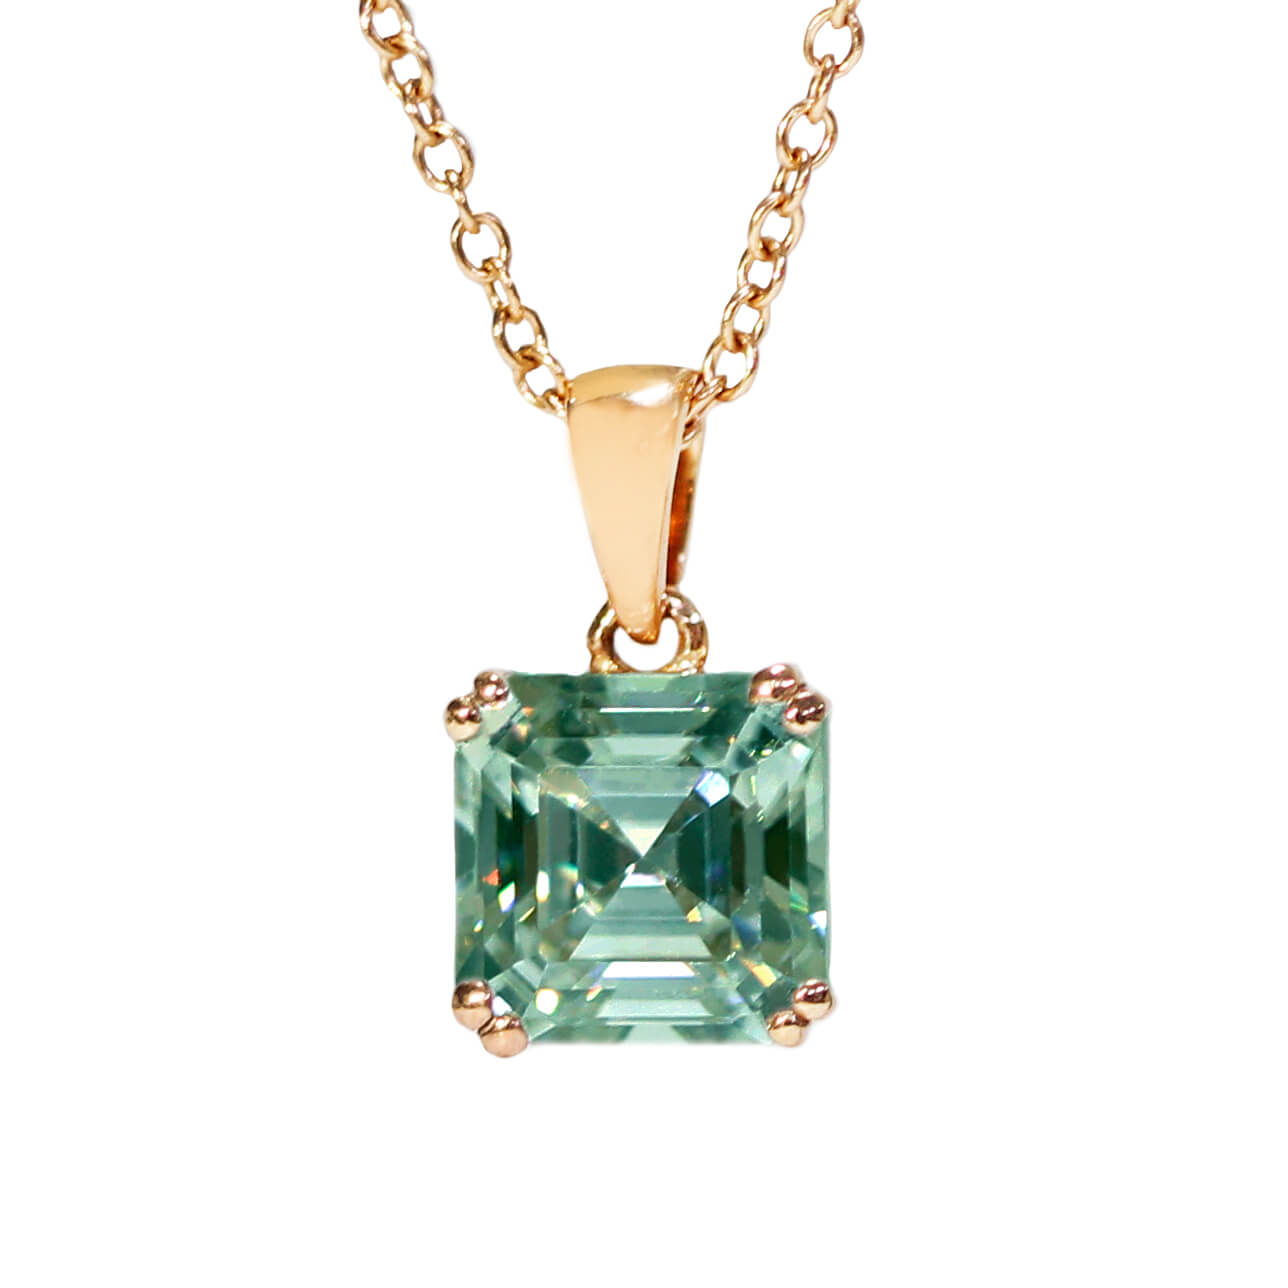 Medium Green Moissanite Asscher Cut 18K Gold Pendant